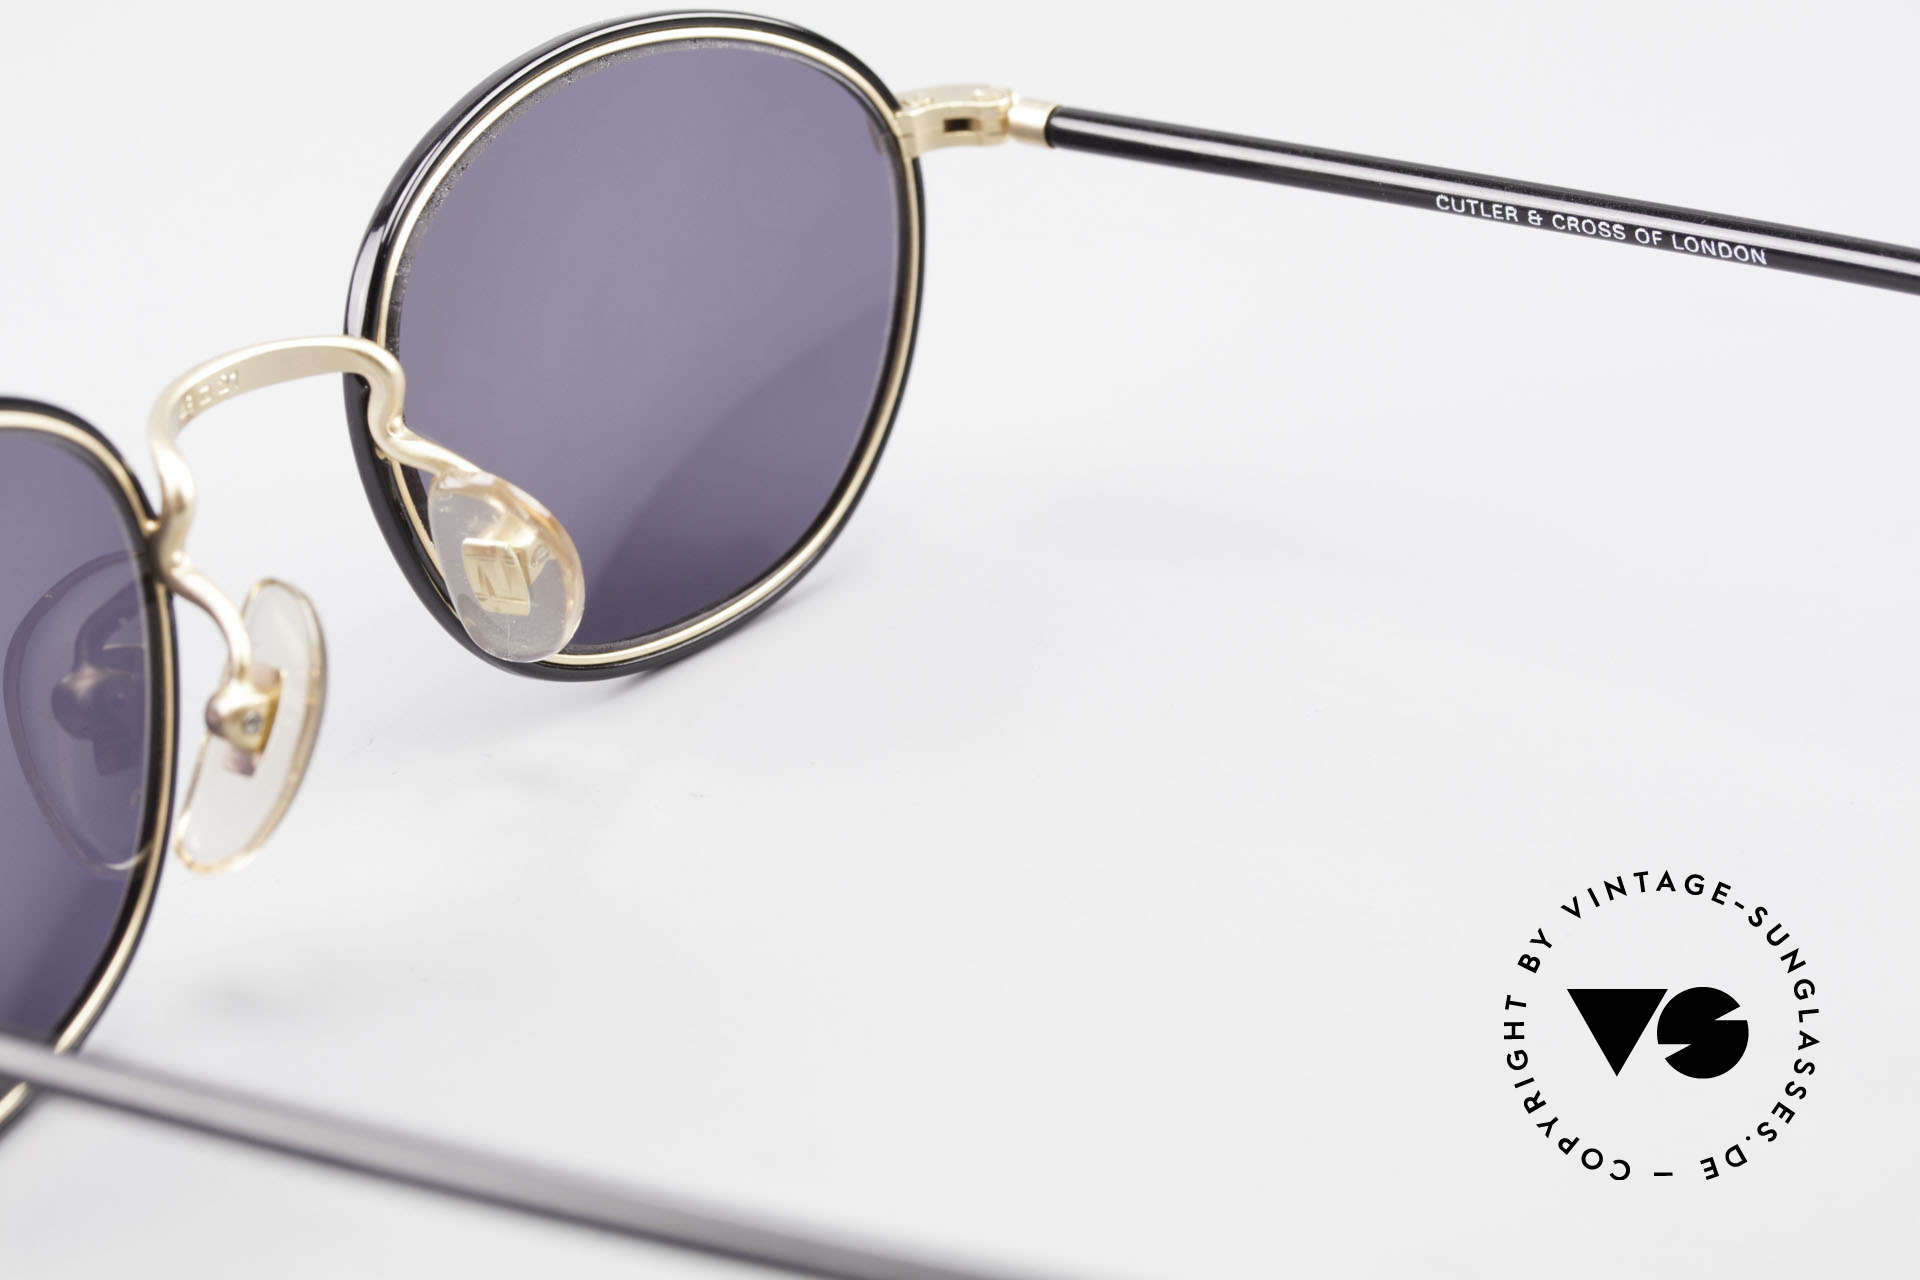 Cutler And Gross 0394 Classic Vintage Sunglasses, NO RETRO fashion, but a unique 20 years old ORIGINAL, Made for Men and Women